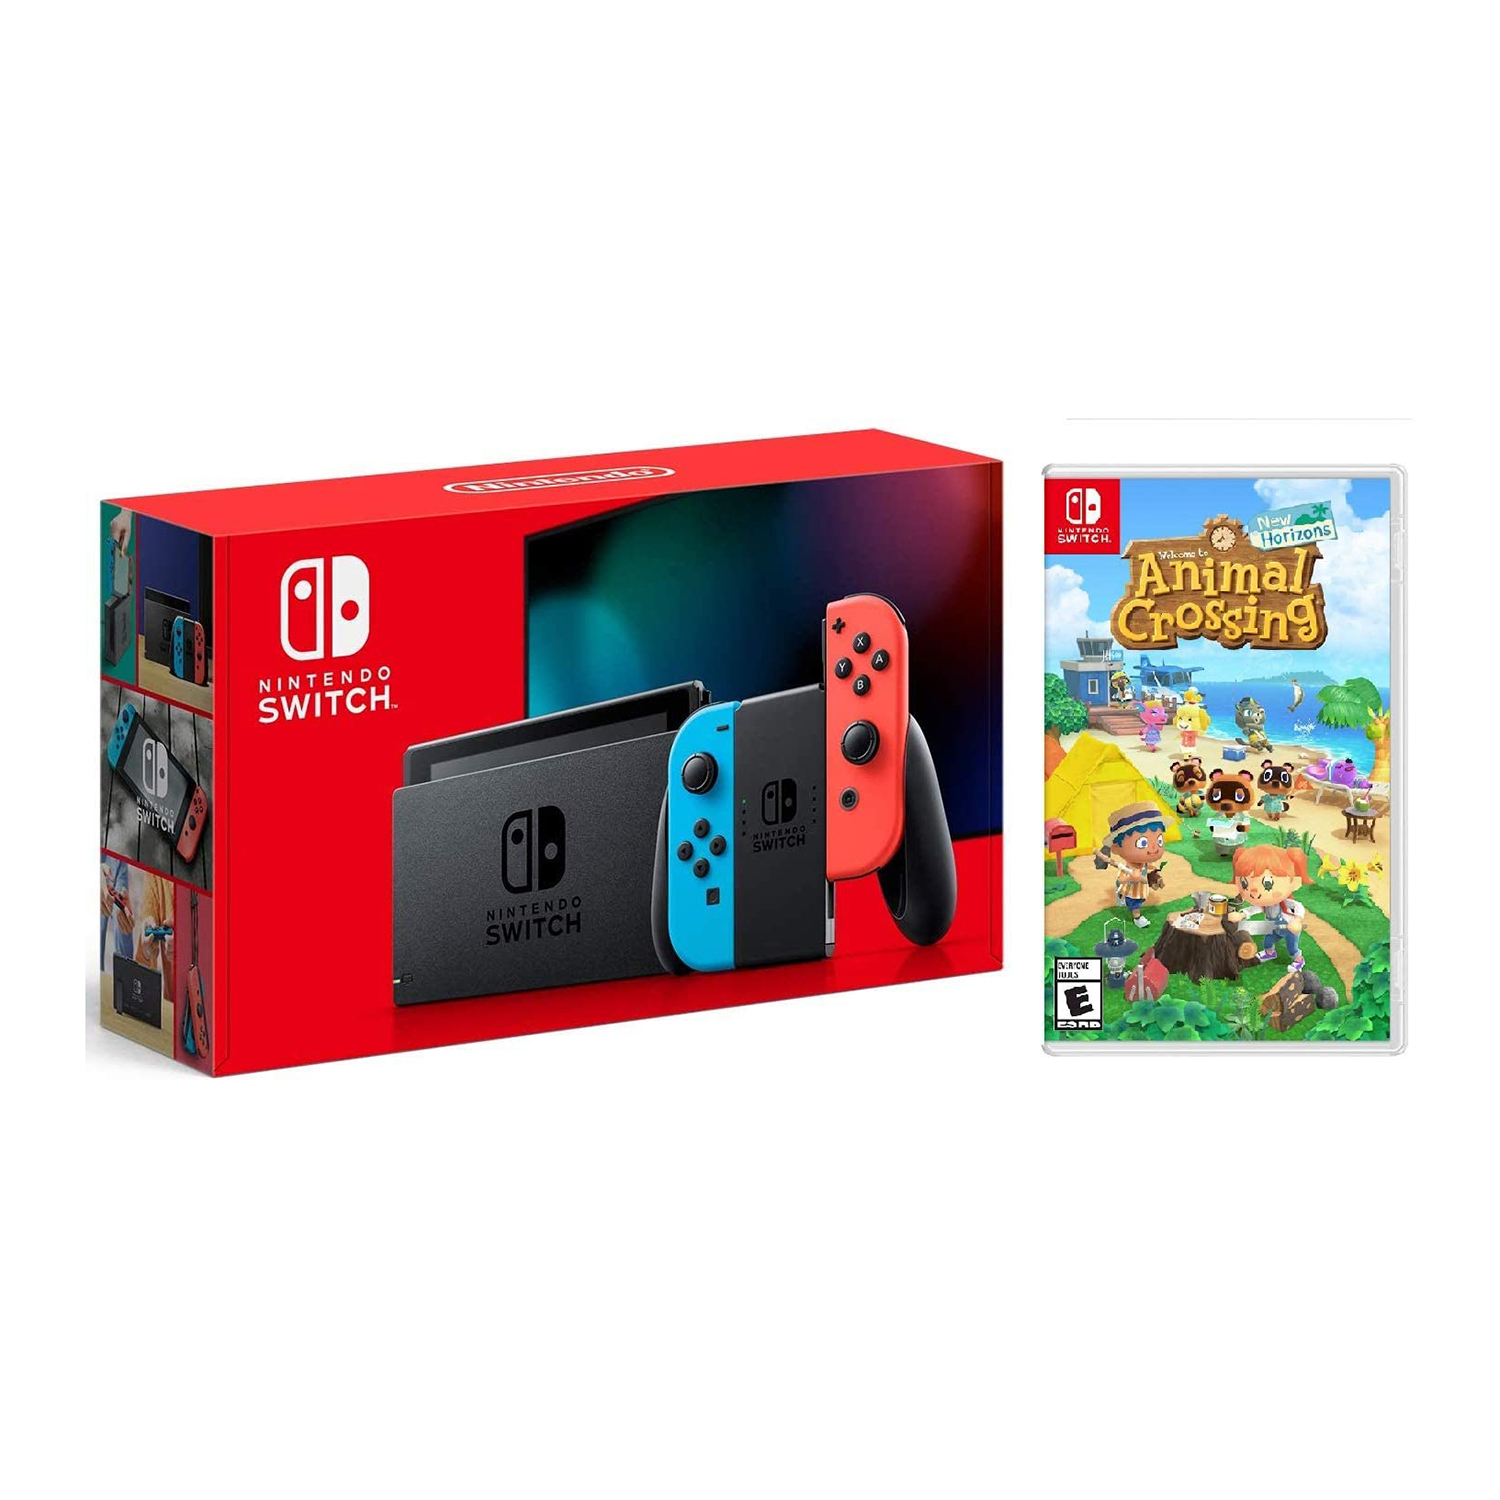 Nintendo Switch (Red and Blue Joy-Con) Animal Crossing Bundle